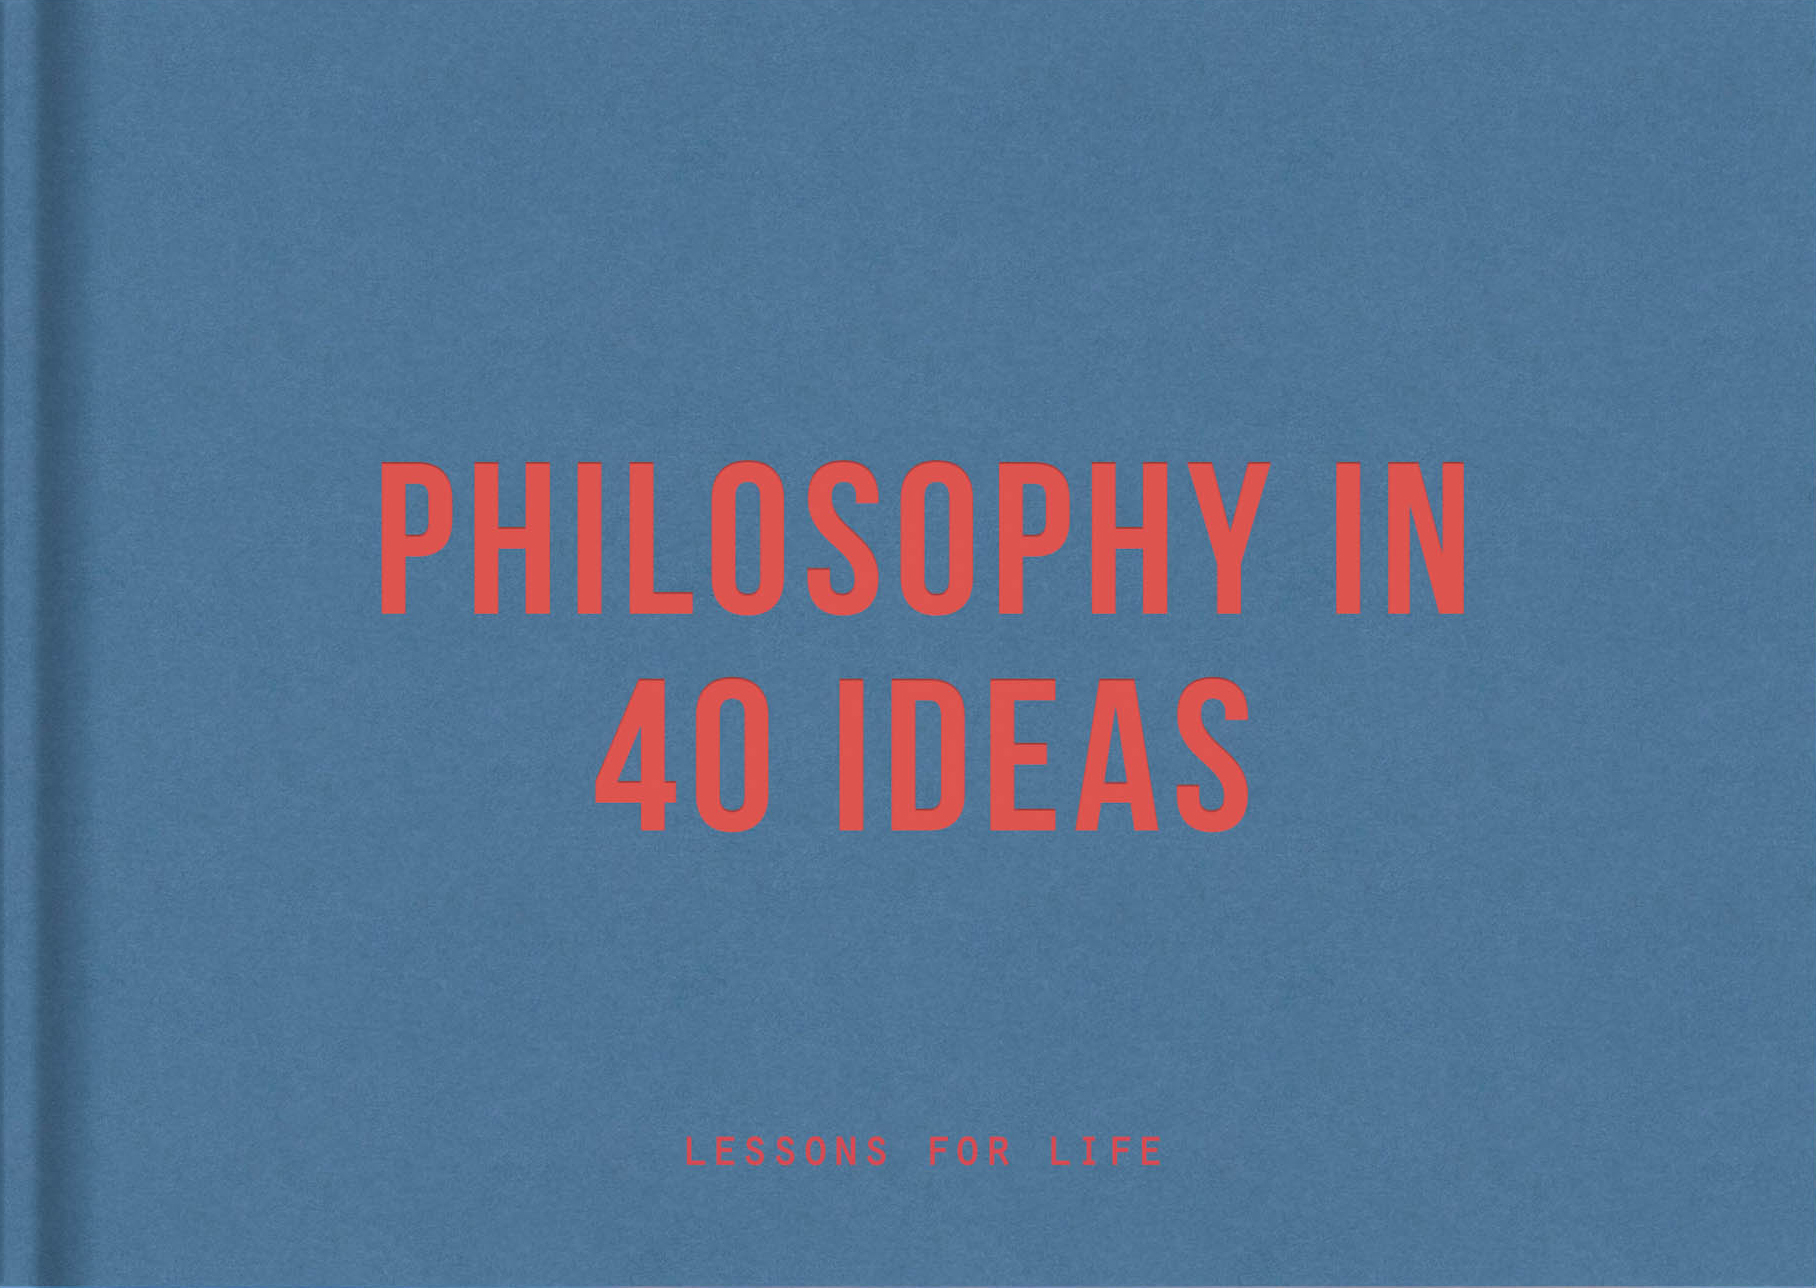 Philosophy in 40 Ideas